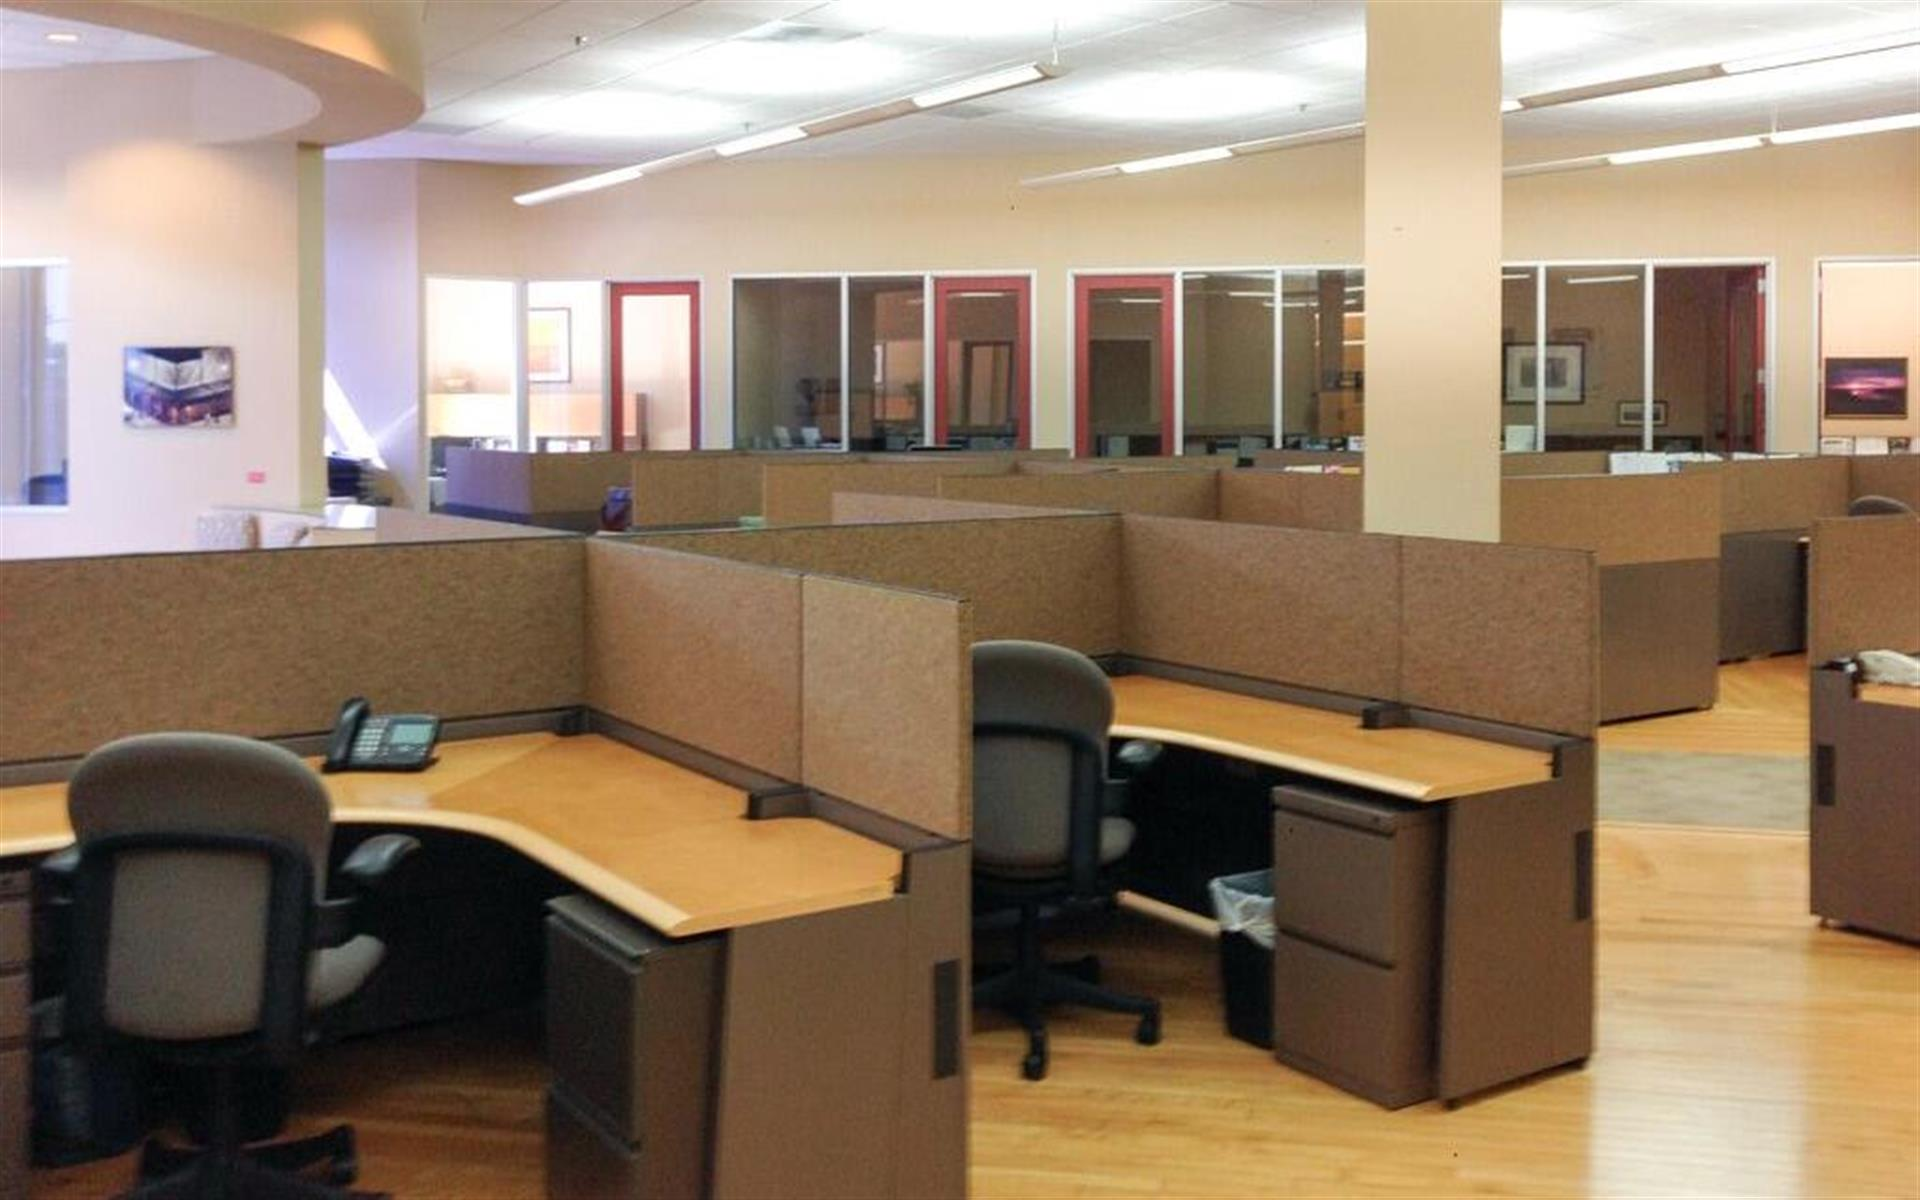 Sebastiani Theatre Building Workspace - Monthly Cubicle